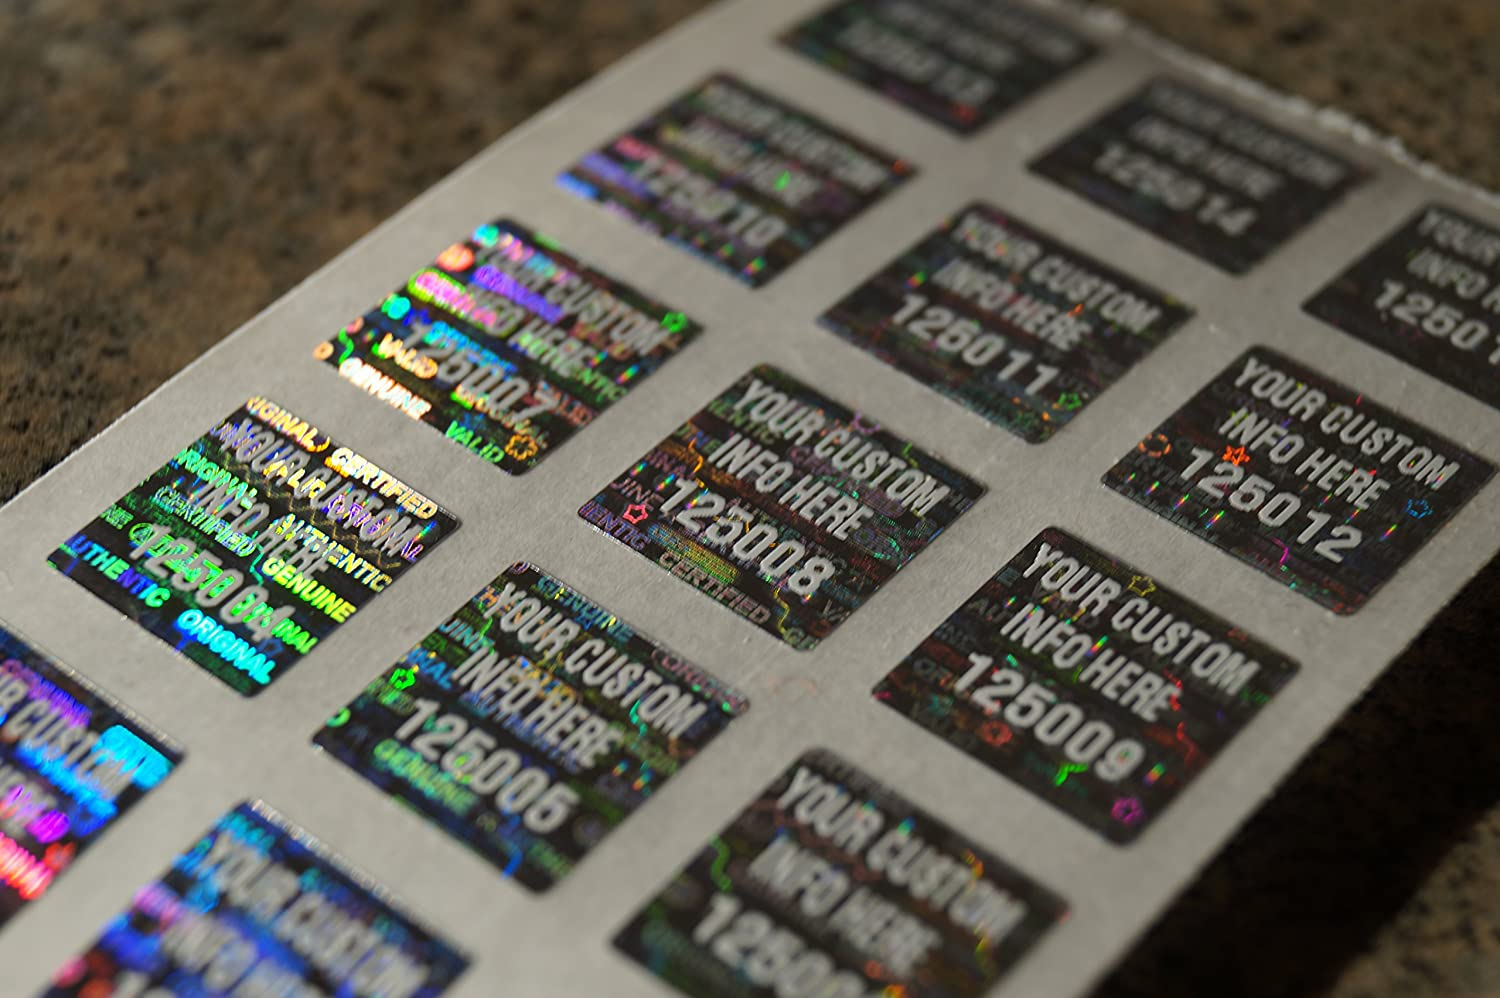 Amazon com qty 500 custom white printed bright silver hologram warranty void tamper evident high security labels stickers 5 inch square office